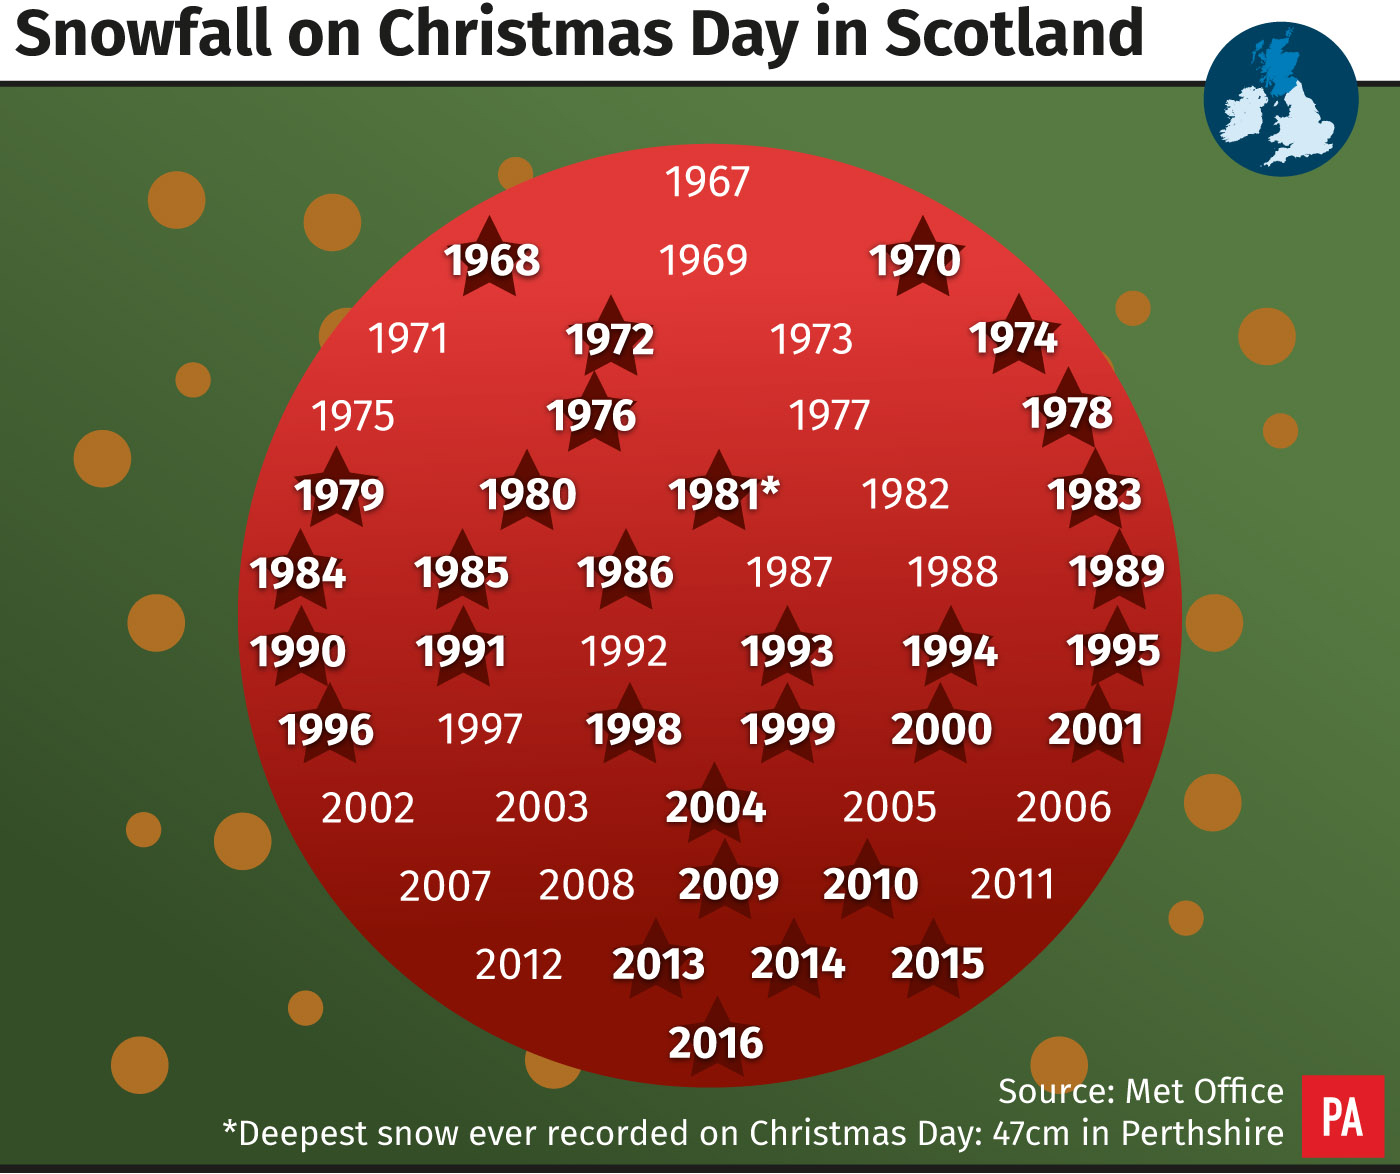 Snowfall on Christmas day in Scotland.